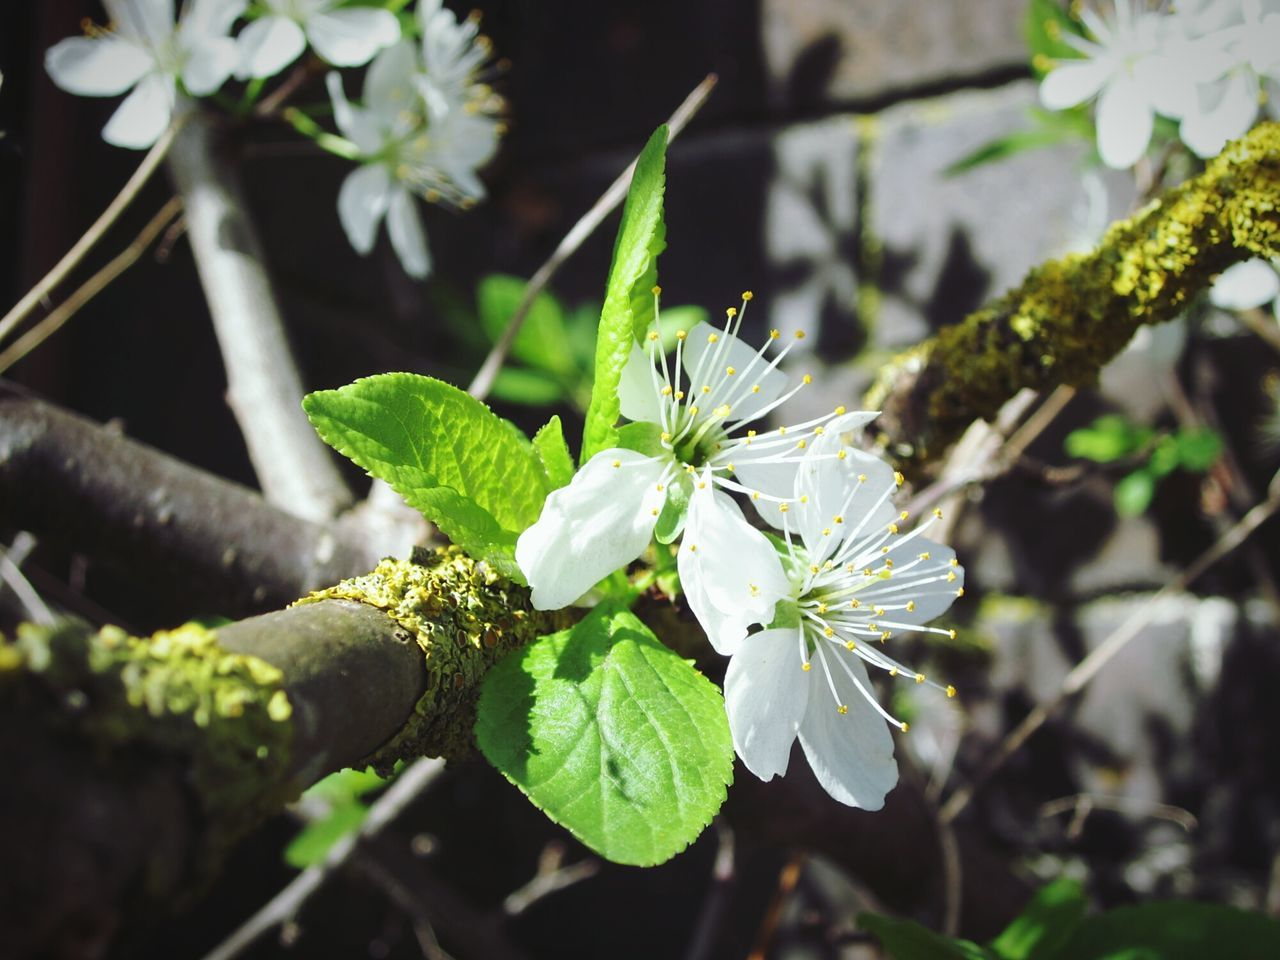 growth, nature, flower, beauty in nature, plant, leaf, white color, fragility, freshness, green color, focus on foreground, day, no people, outdoors, close-up, branch, tree, flower head